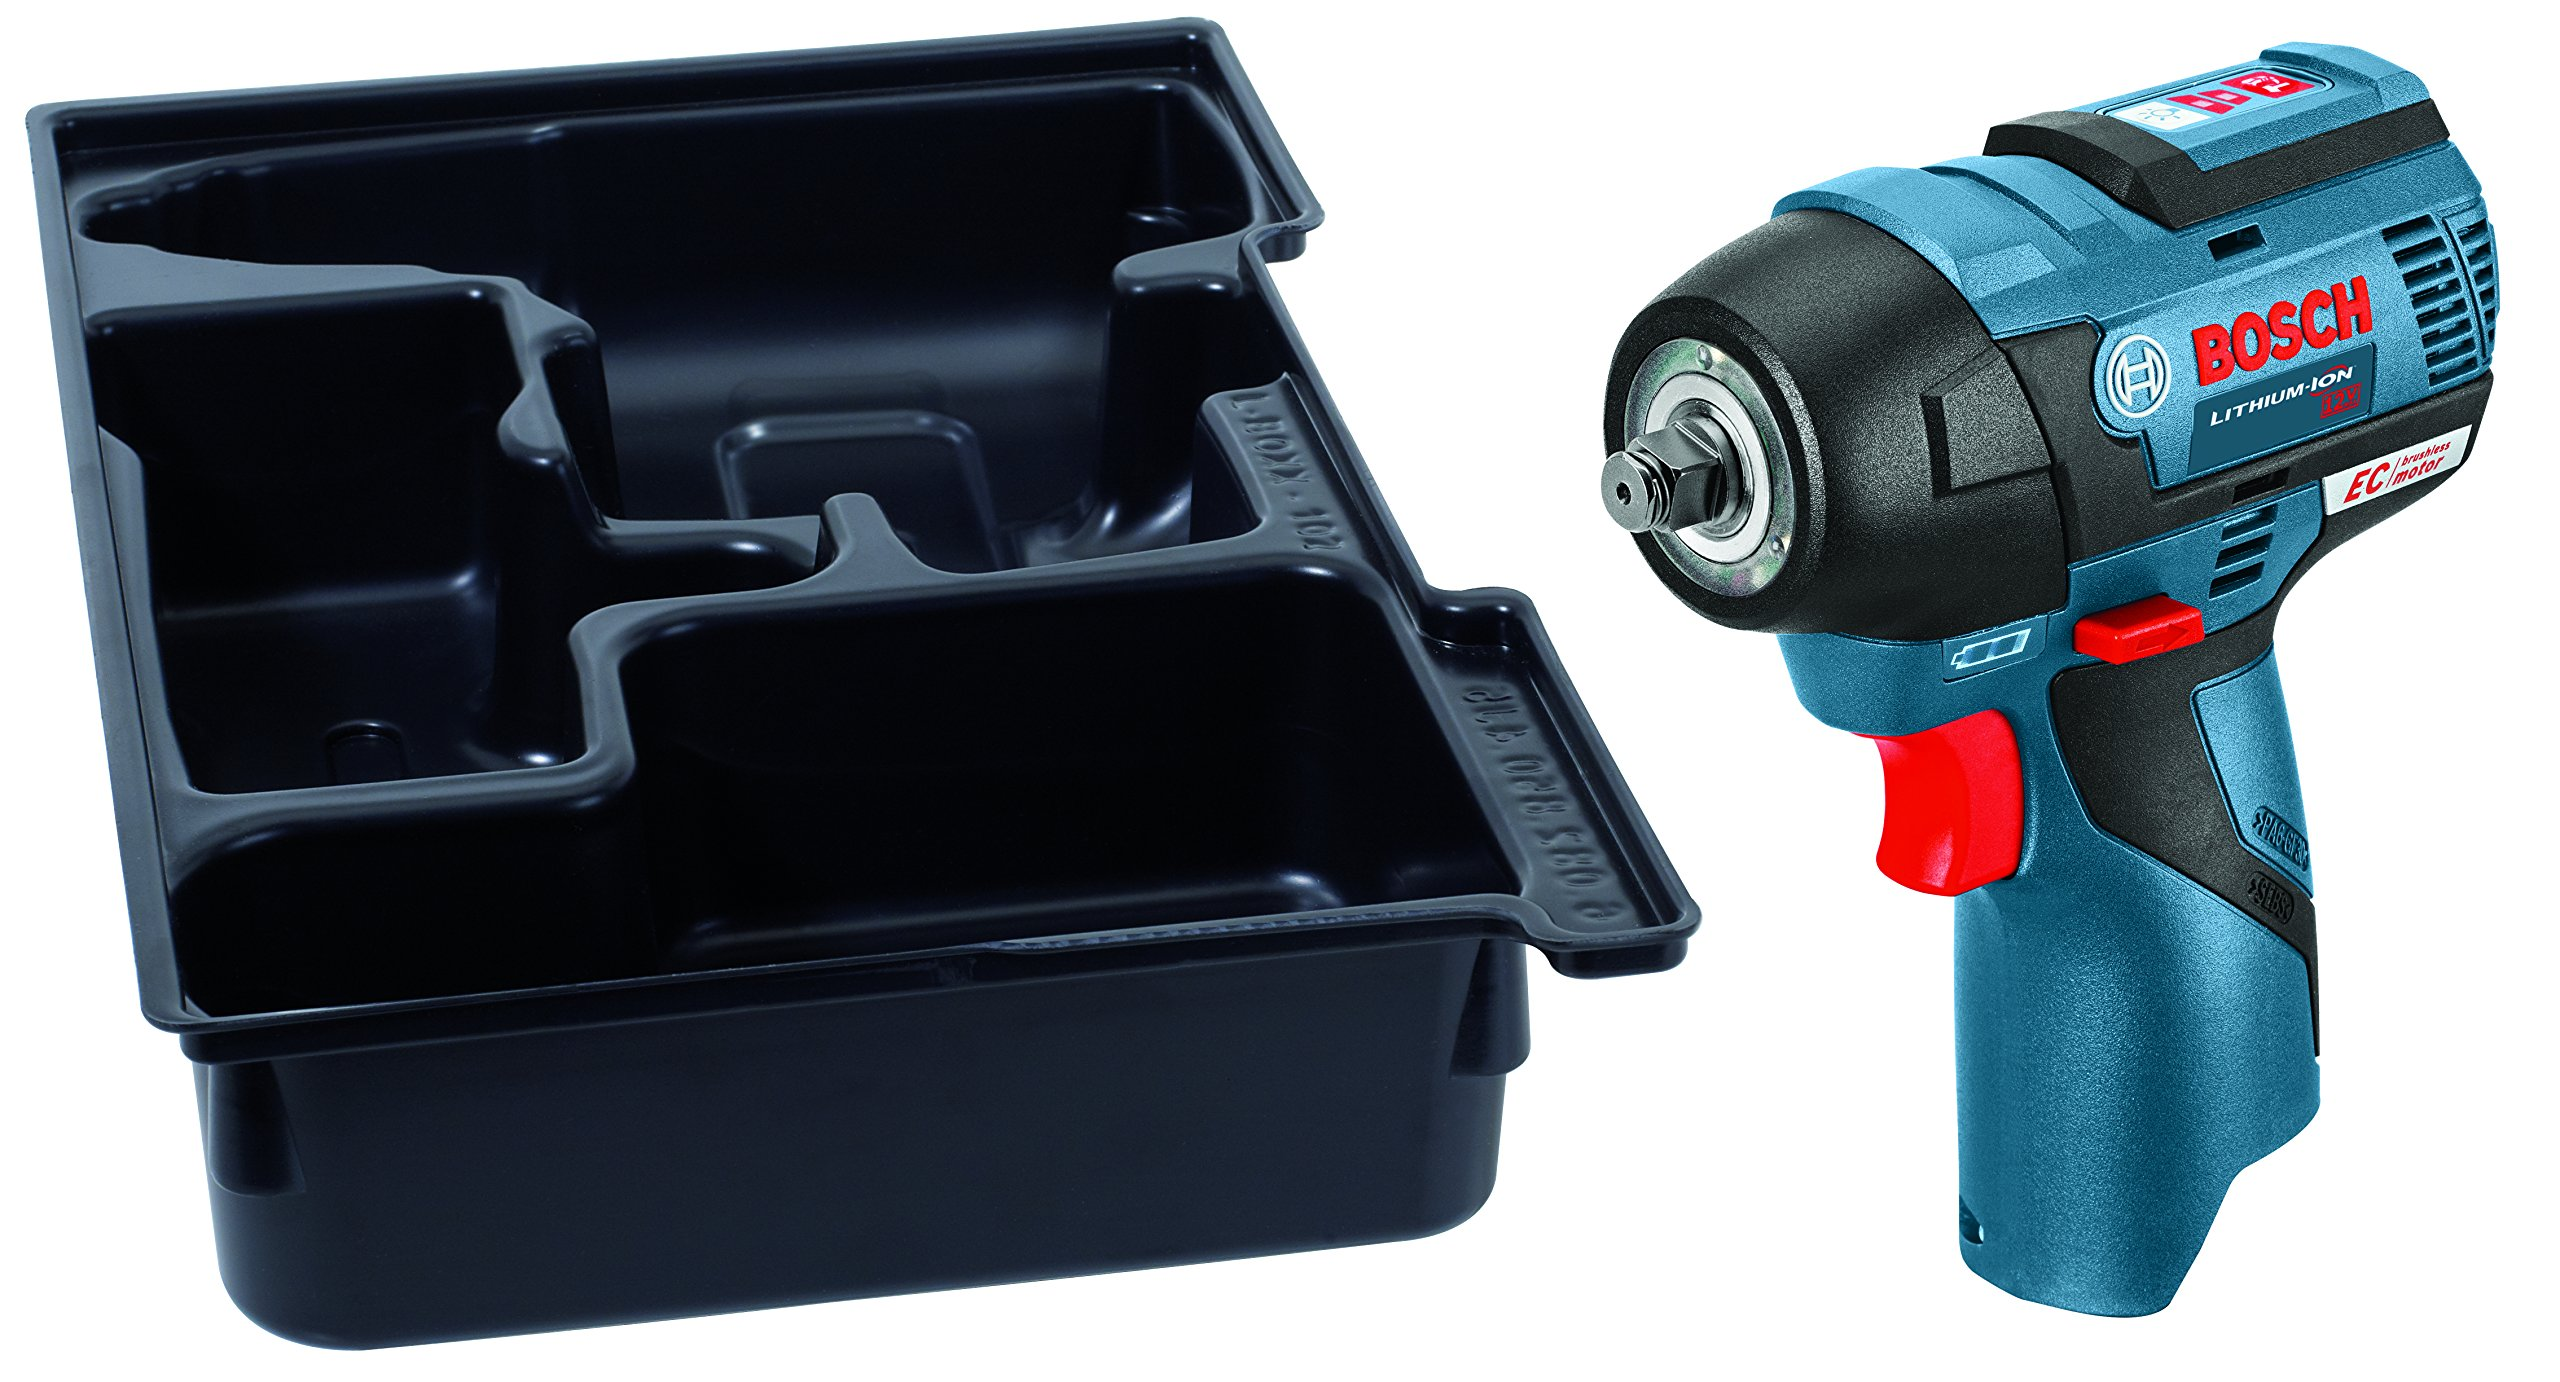 Bosch PS82BN 12V Max EC Brushless 3/8'' Impact Wrench with Exact-Fit Insert Tray